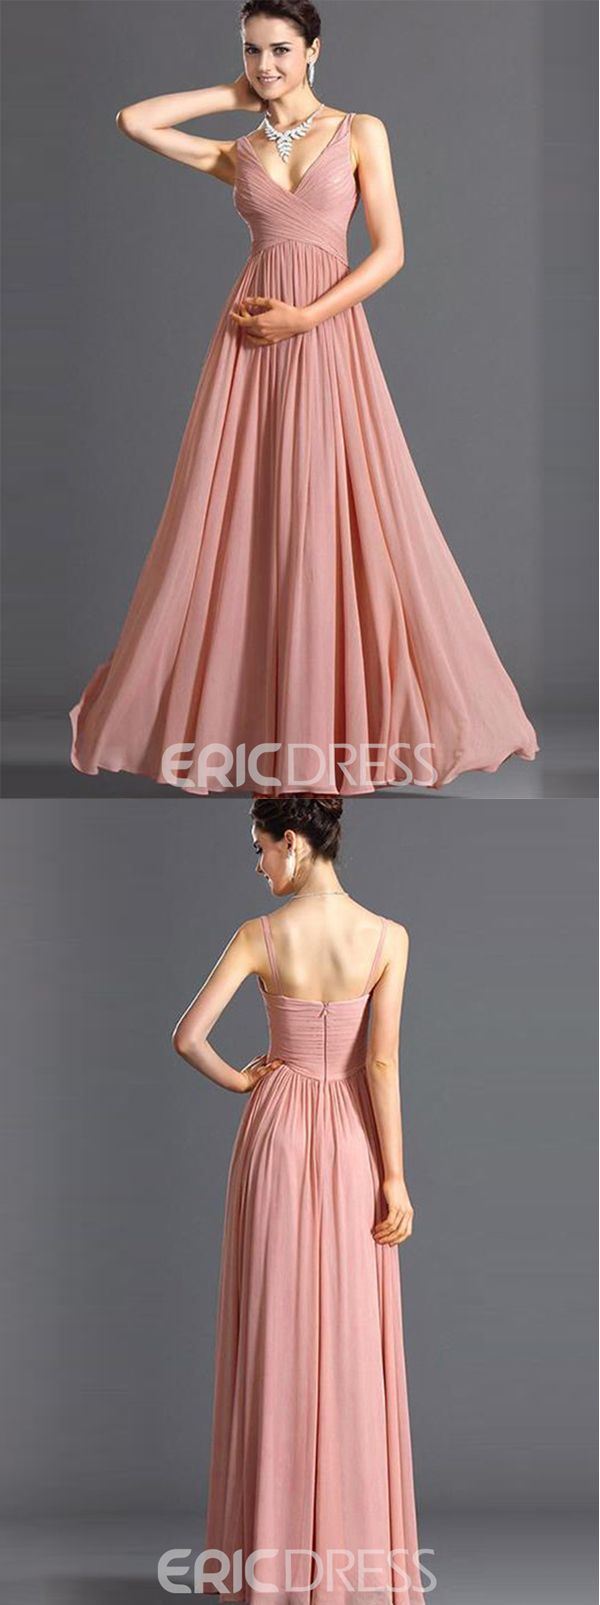 Ericdress V-Neck Backless Sleeveless Maxi Dress|French Romantic